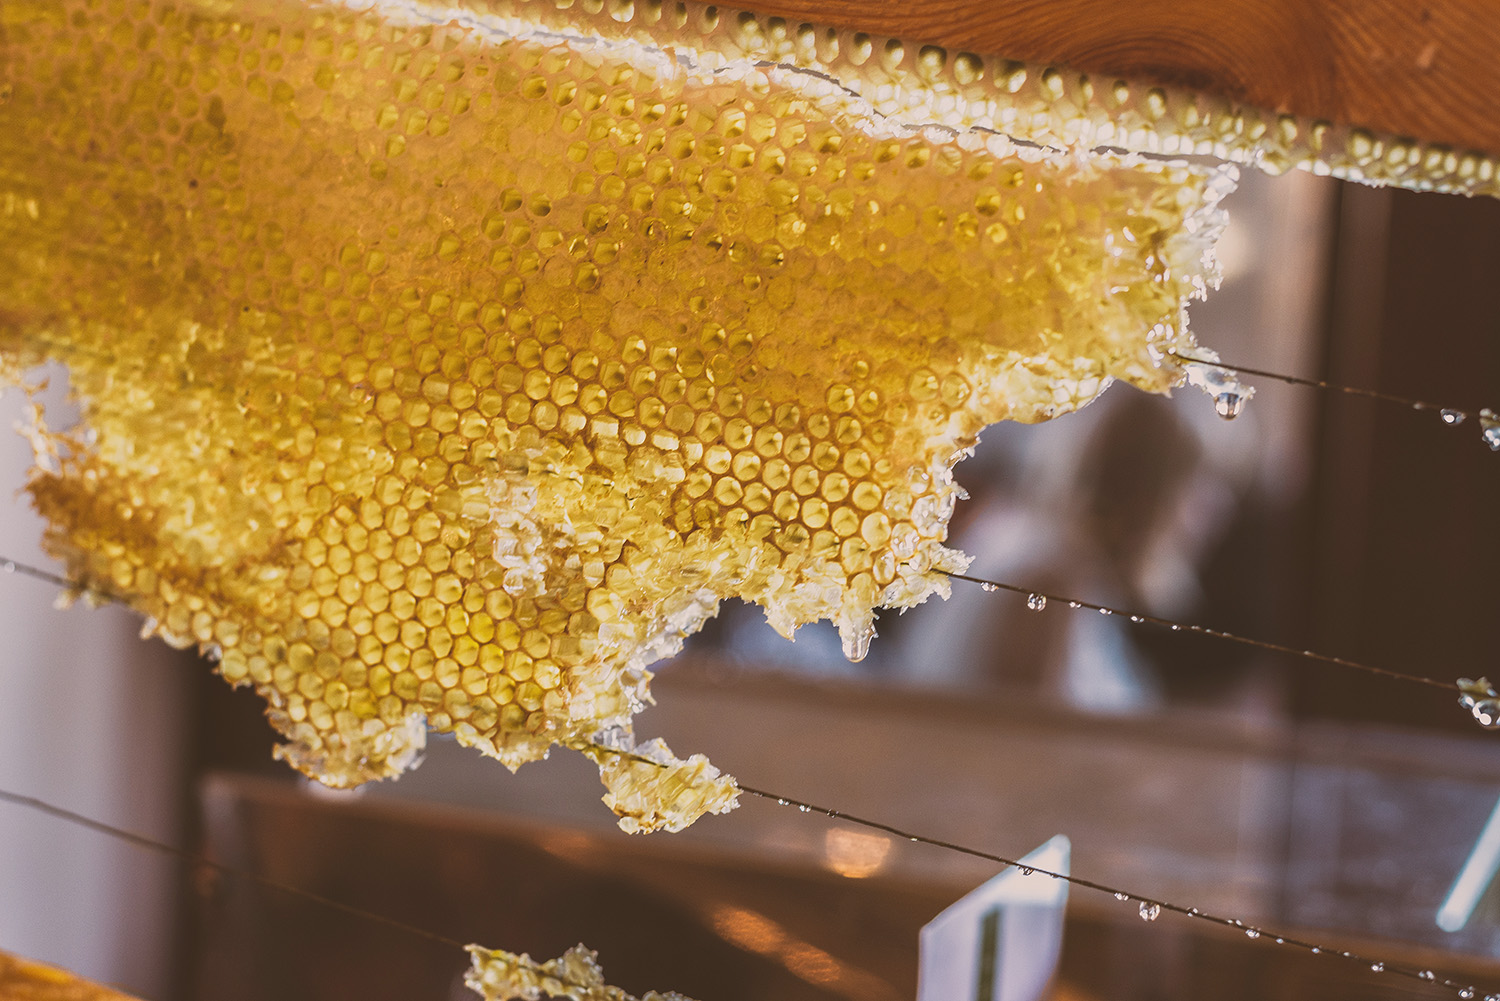 What is Ethical Honey and How Can I Find It? | Greenopedia